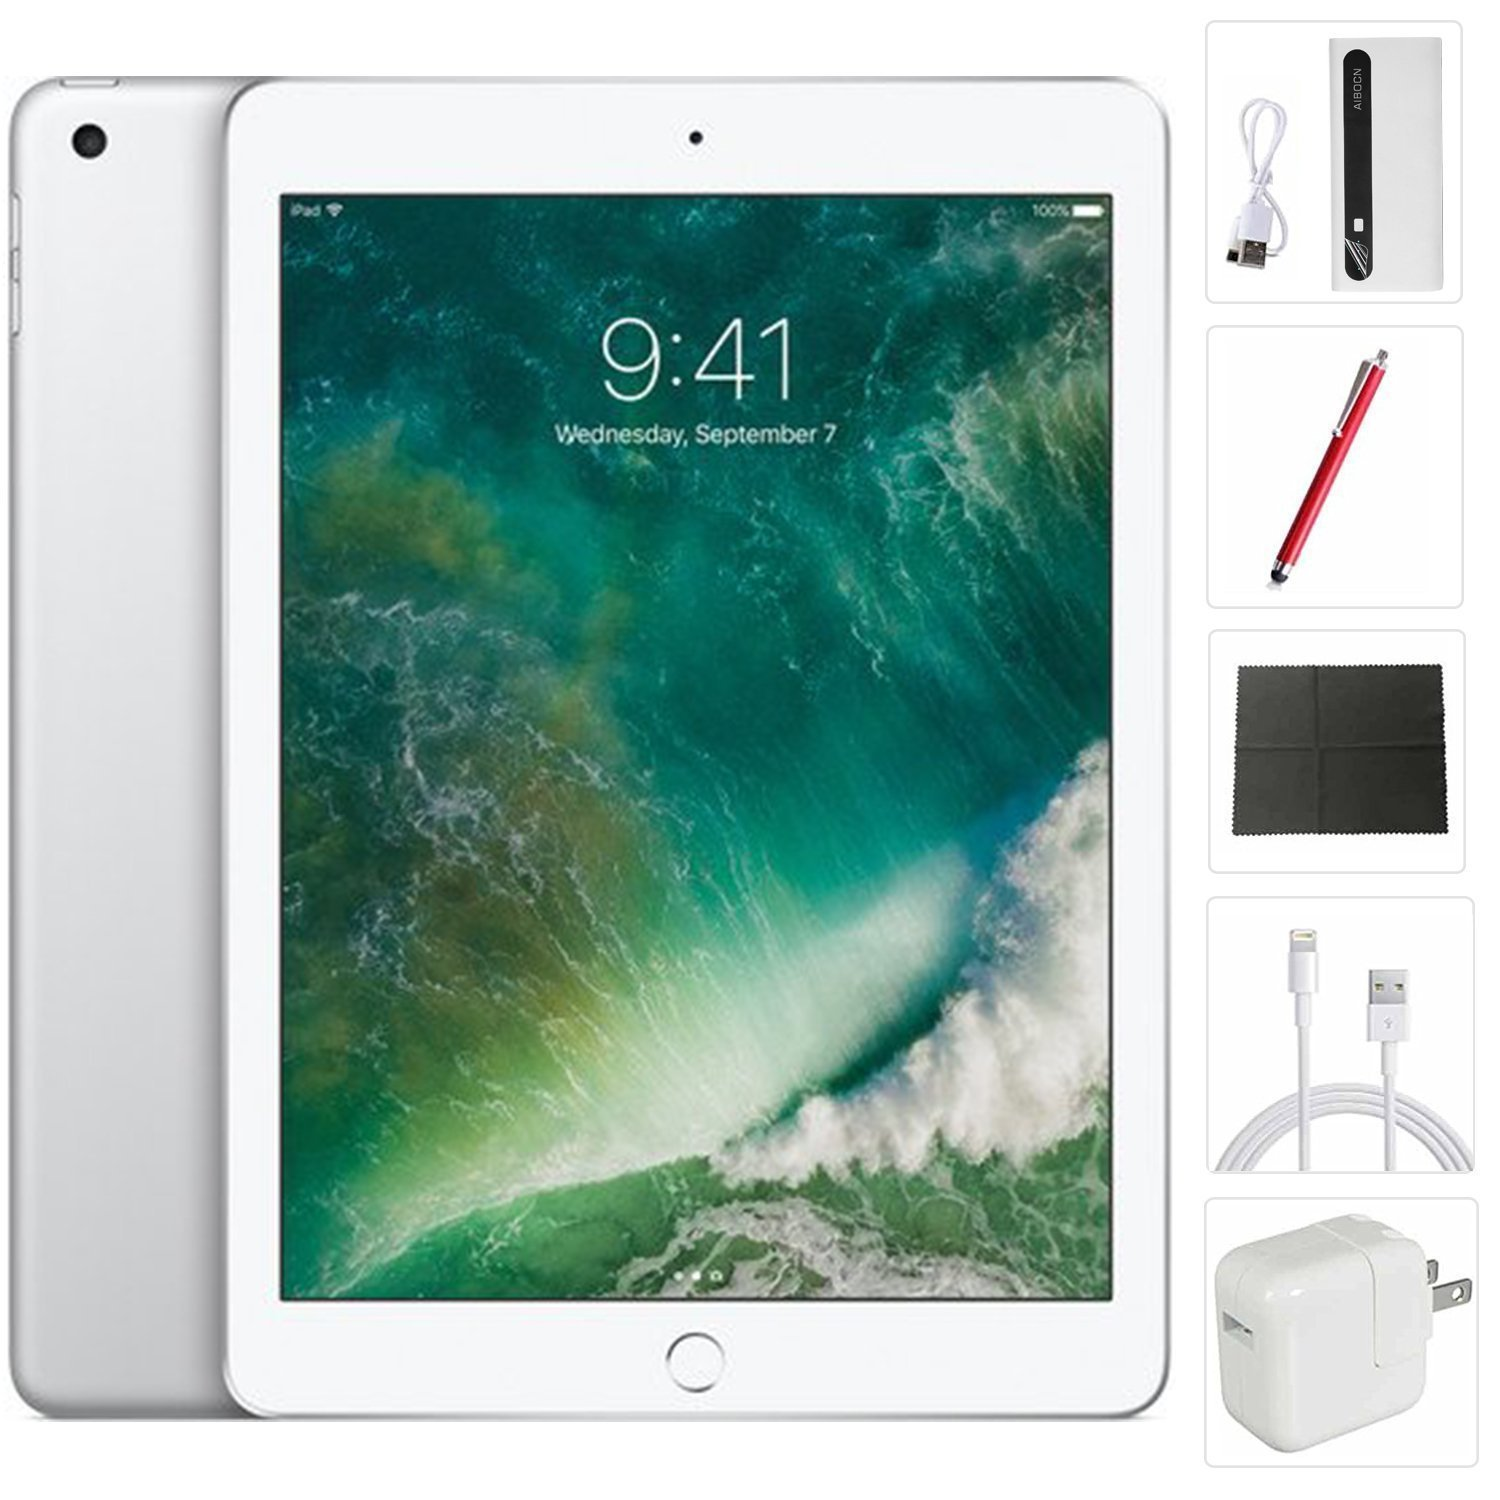 Apple iPad mini 4 Tablet (128GB, Silver, 7.9 Inch, 2017 Model, WiFi) + Accessories Bundle (10,000mAh iPad Power Bank, iPad Stylus Pen, Microfiber Cloth) MK9P2LL/A